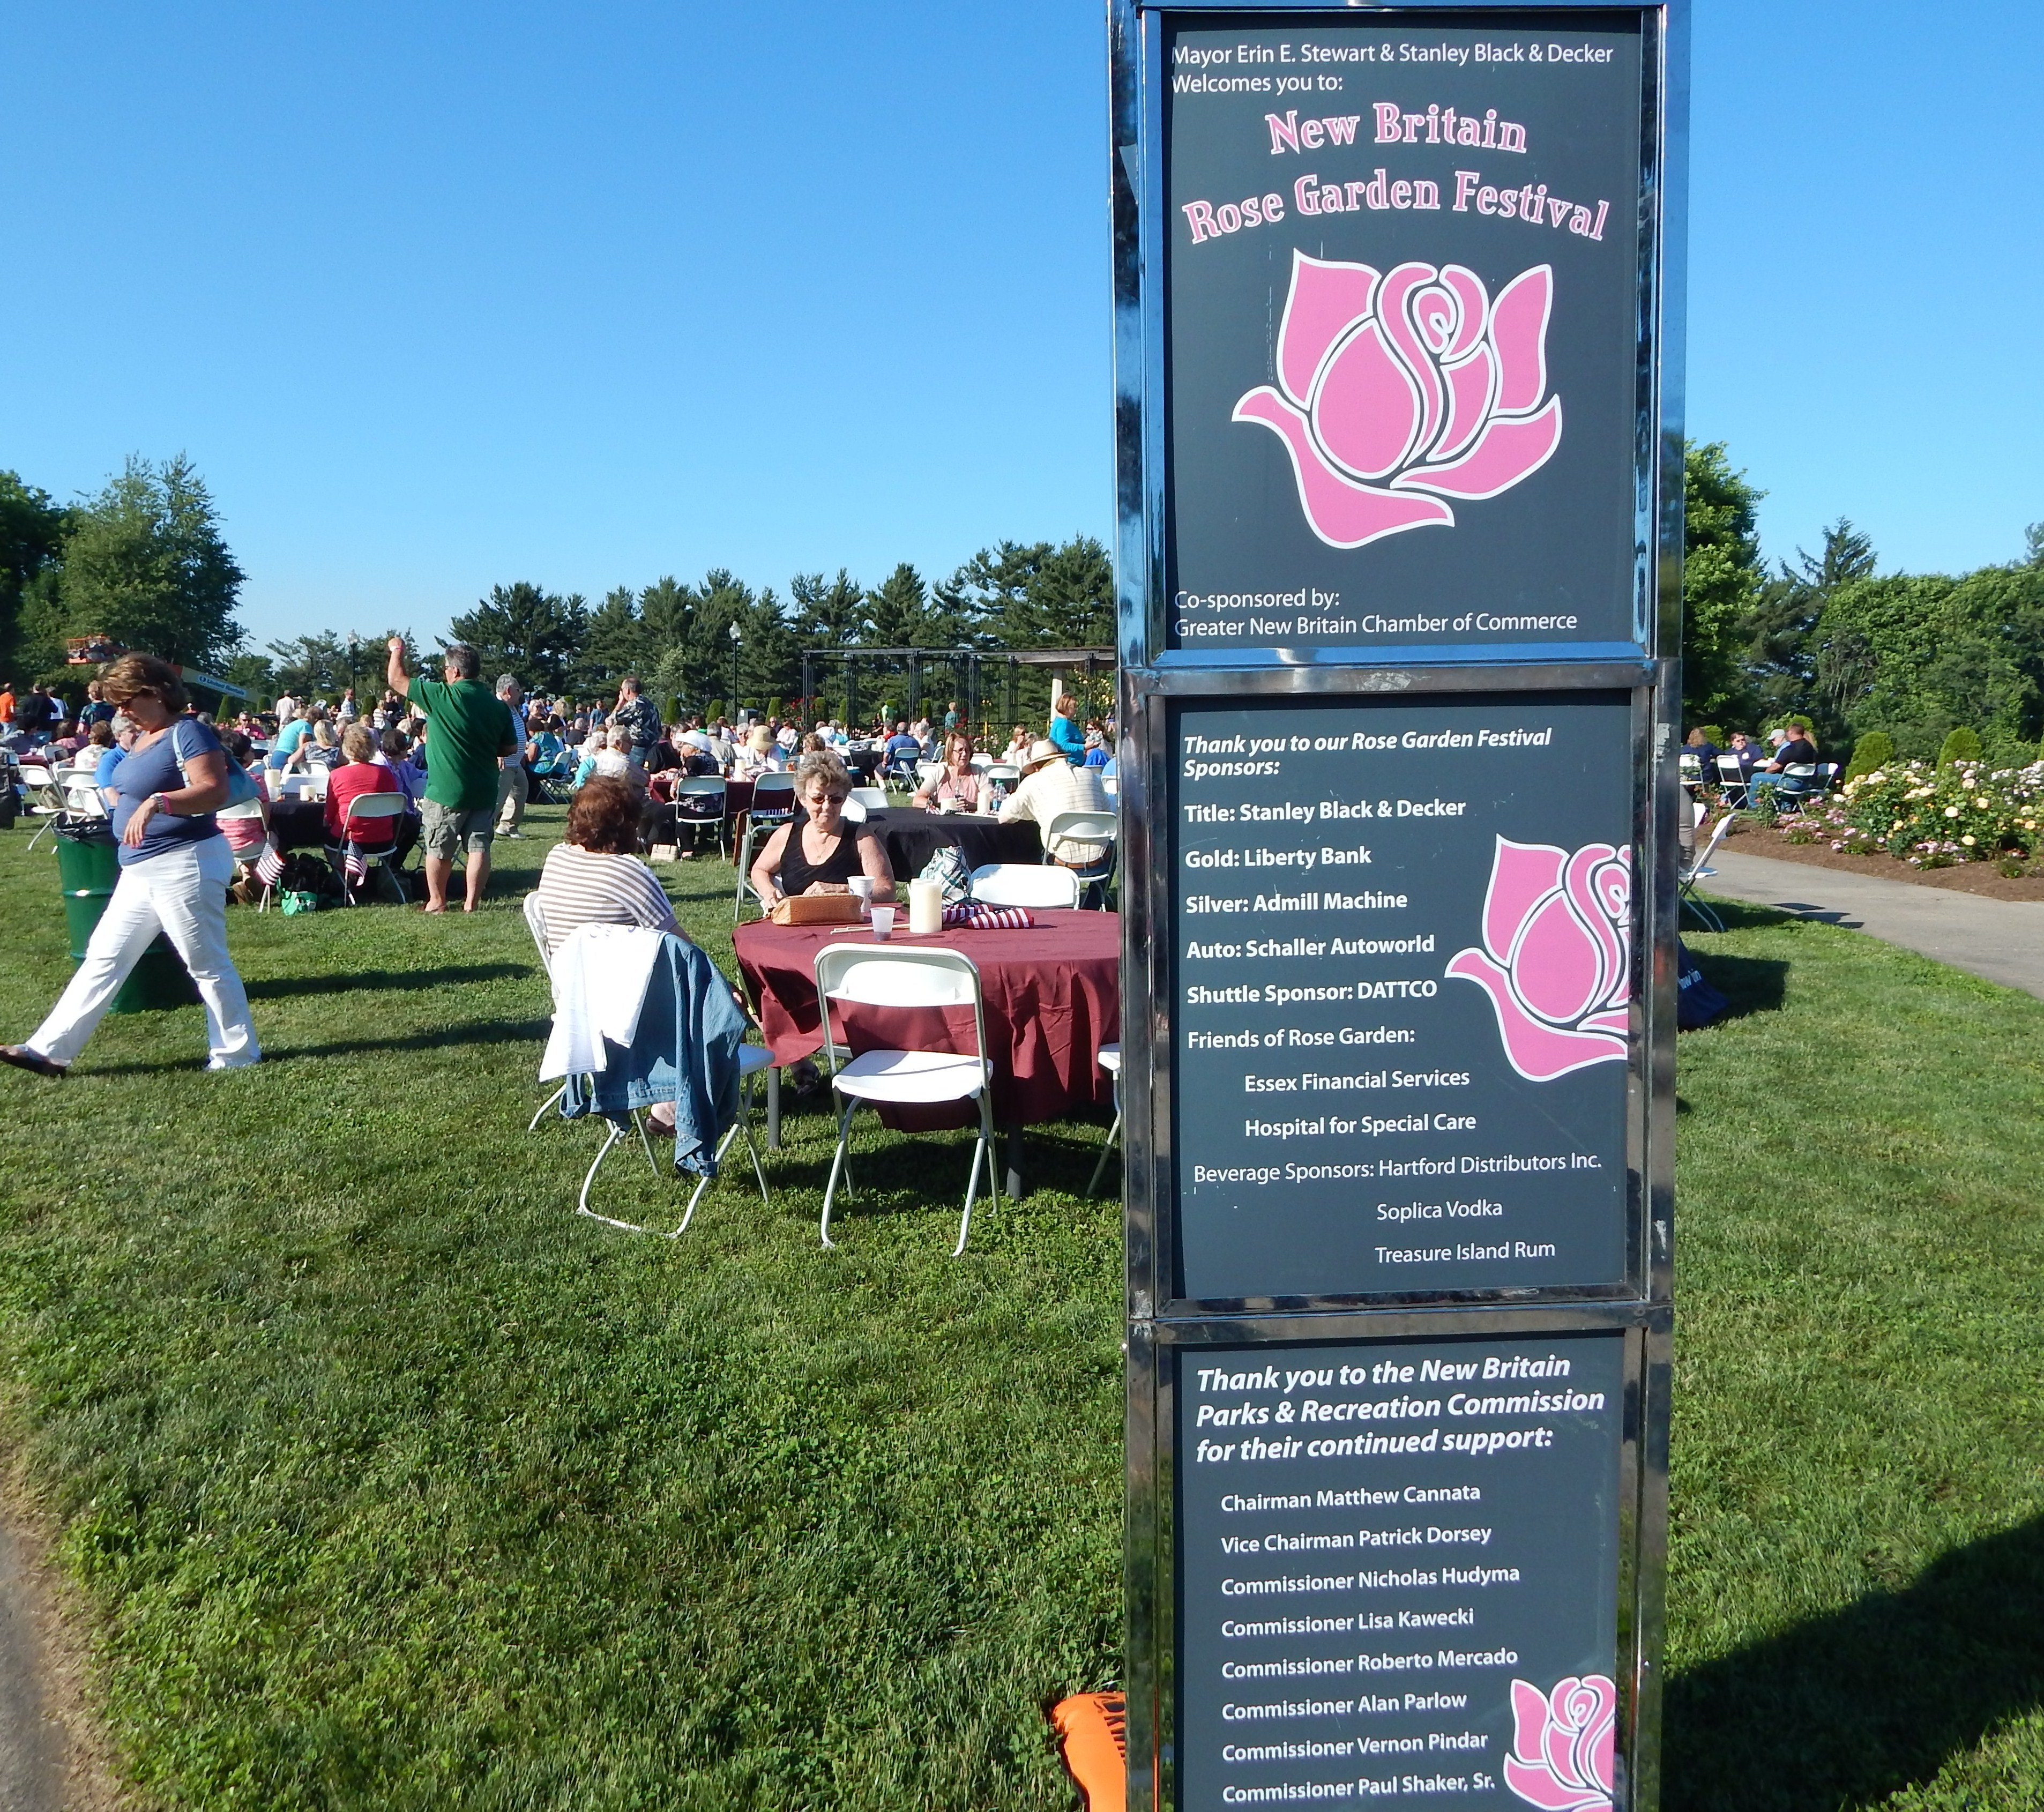 Third Annual Rose Garden Festival